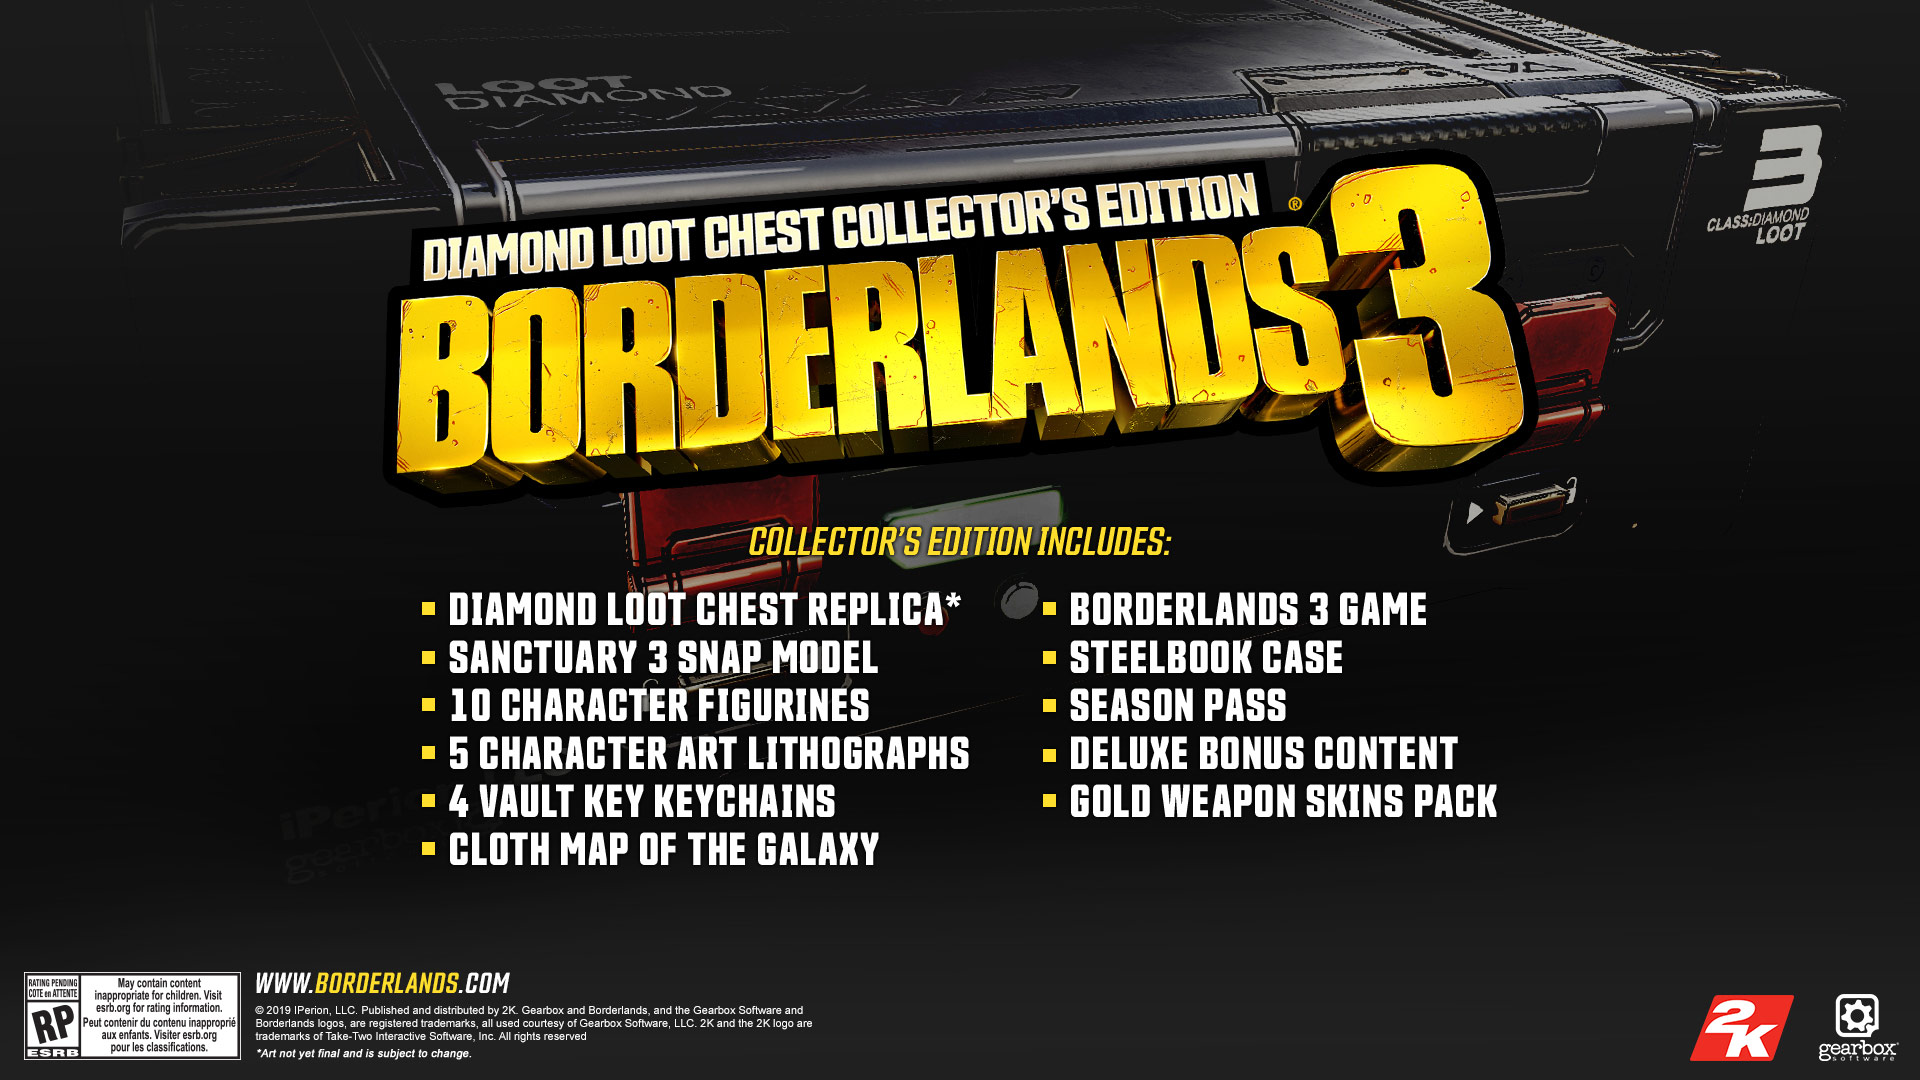 Borderlands 3 Diamond Loot Chest Collector's Edition